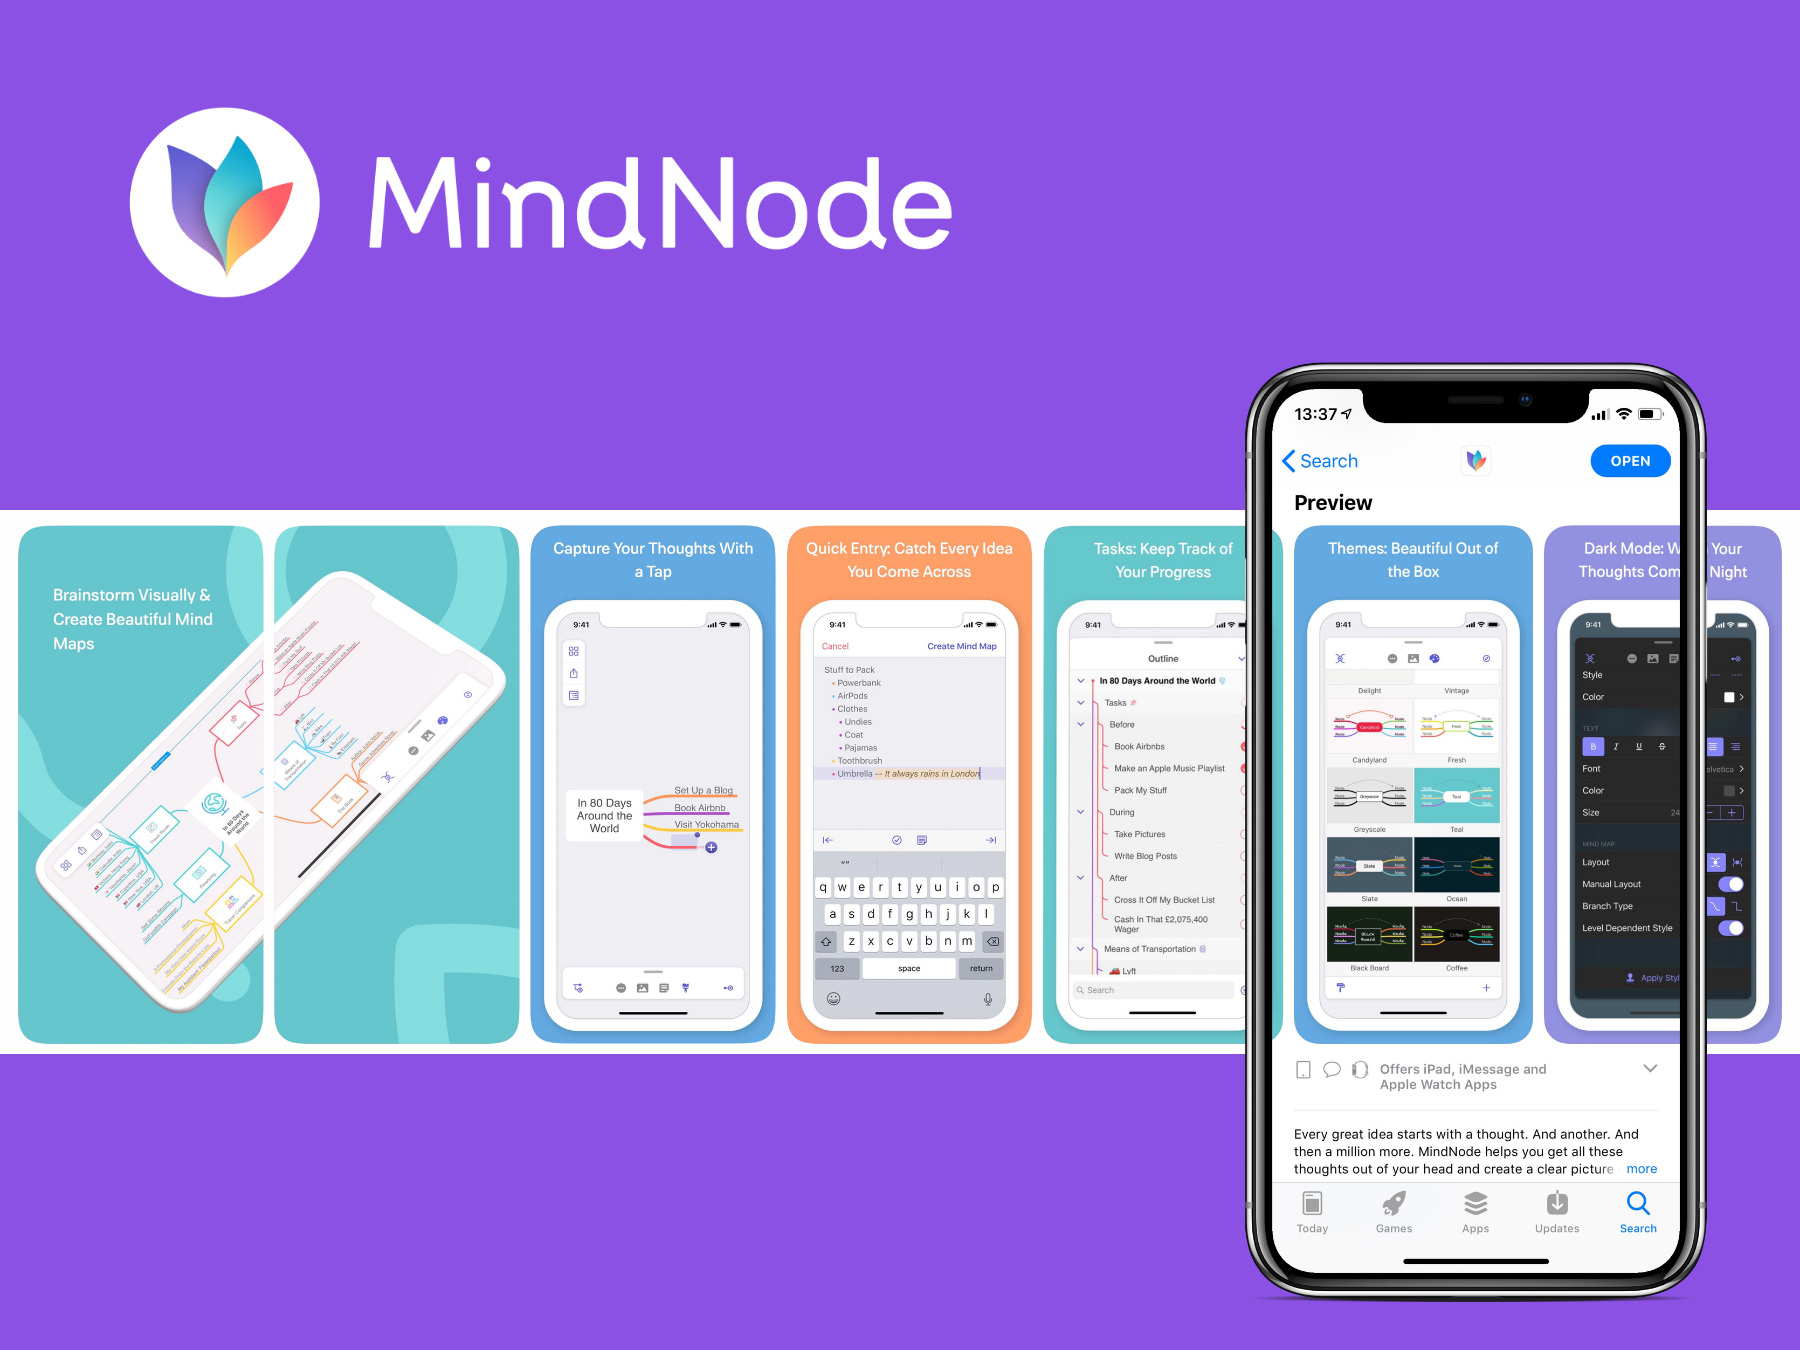 MindNode App Store Screenshots by Anwert